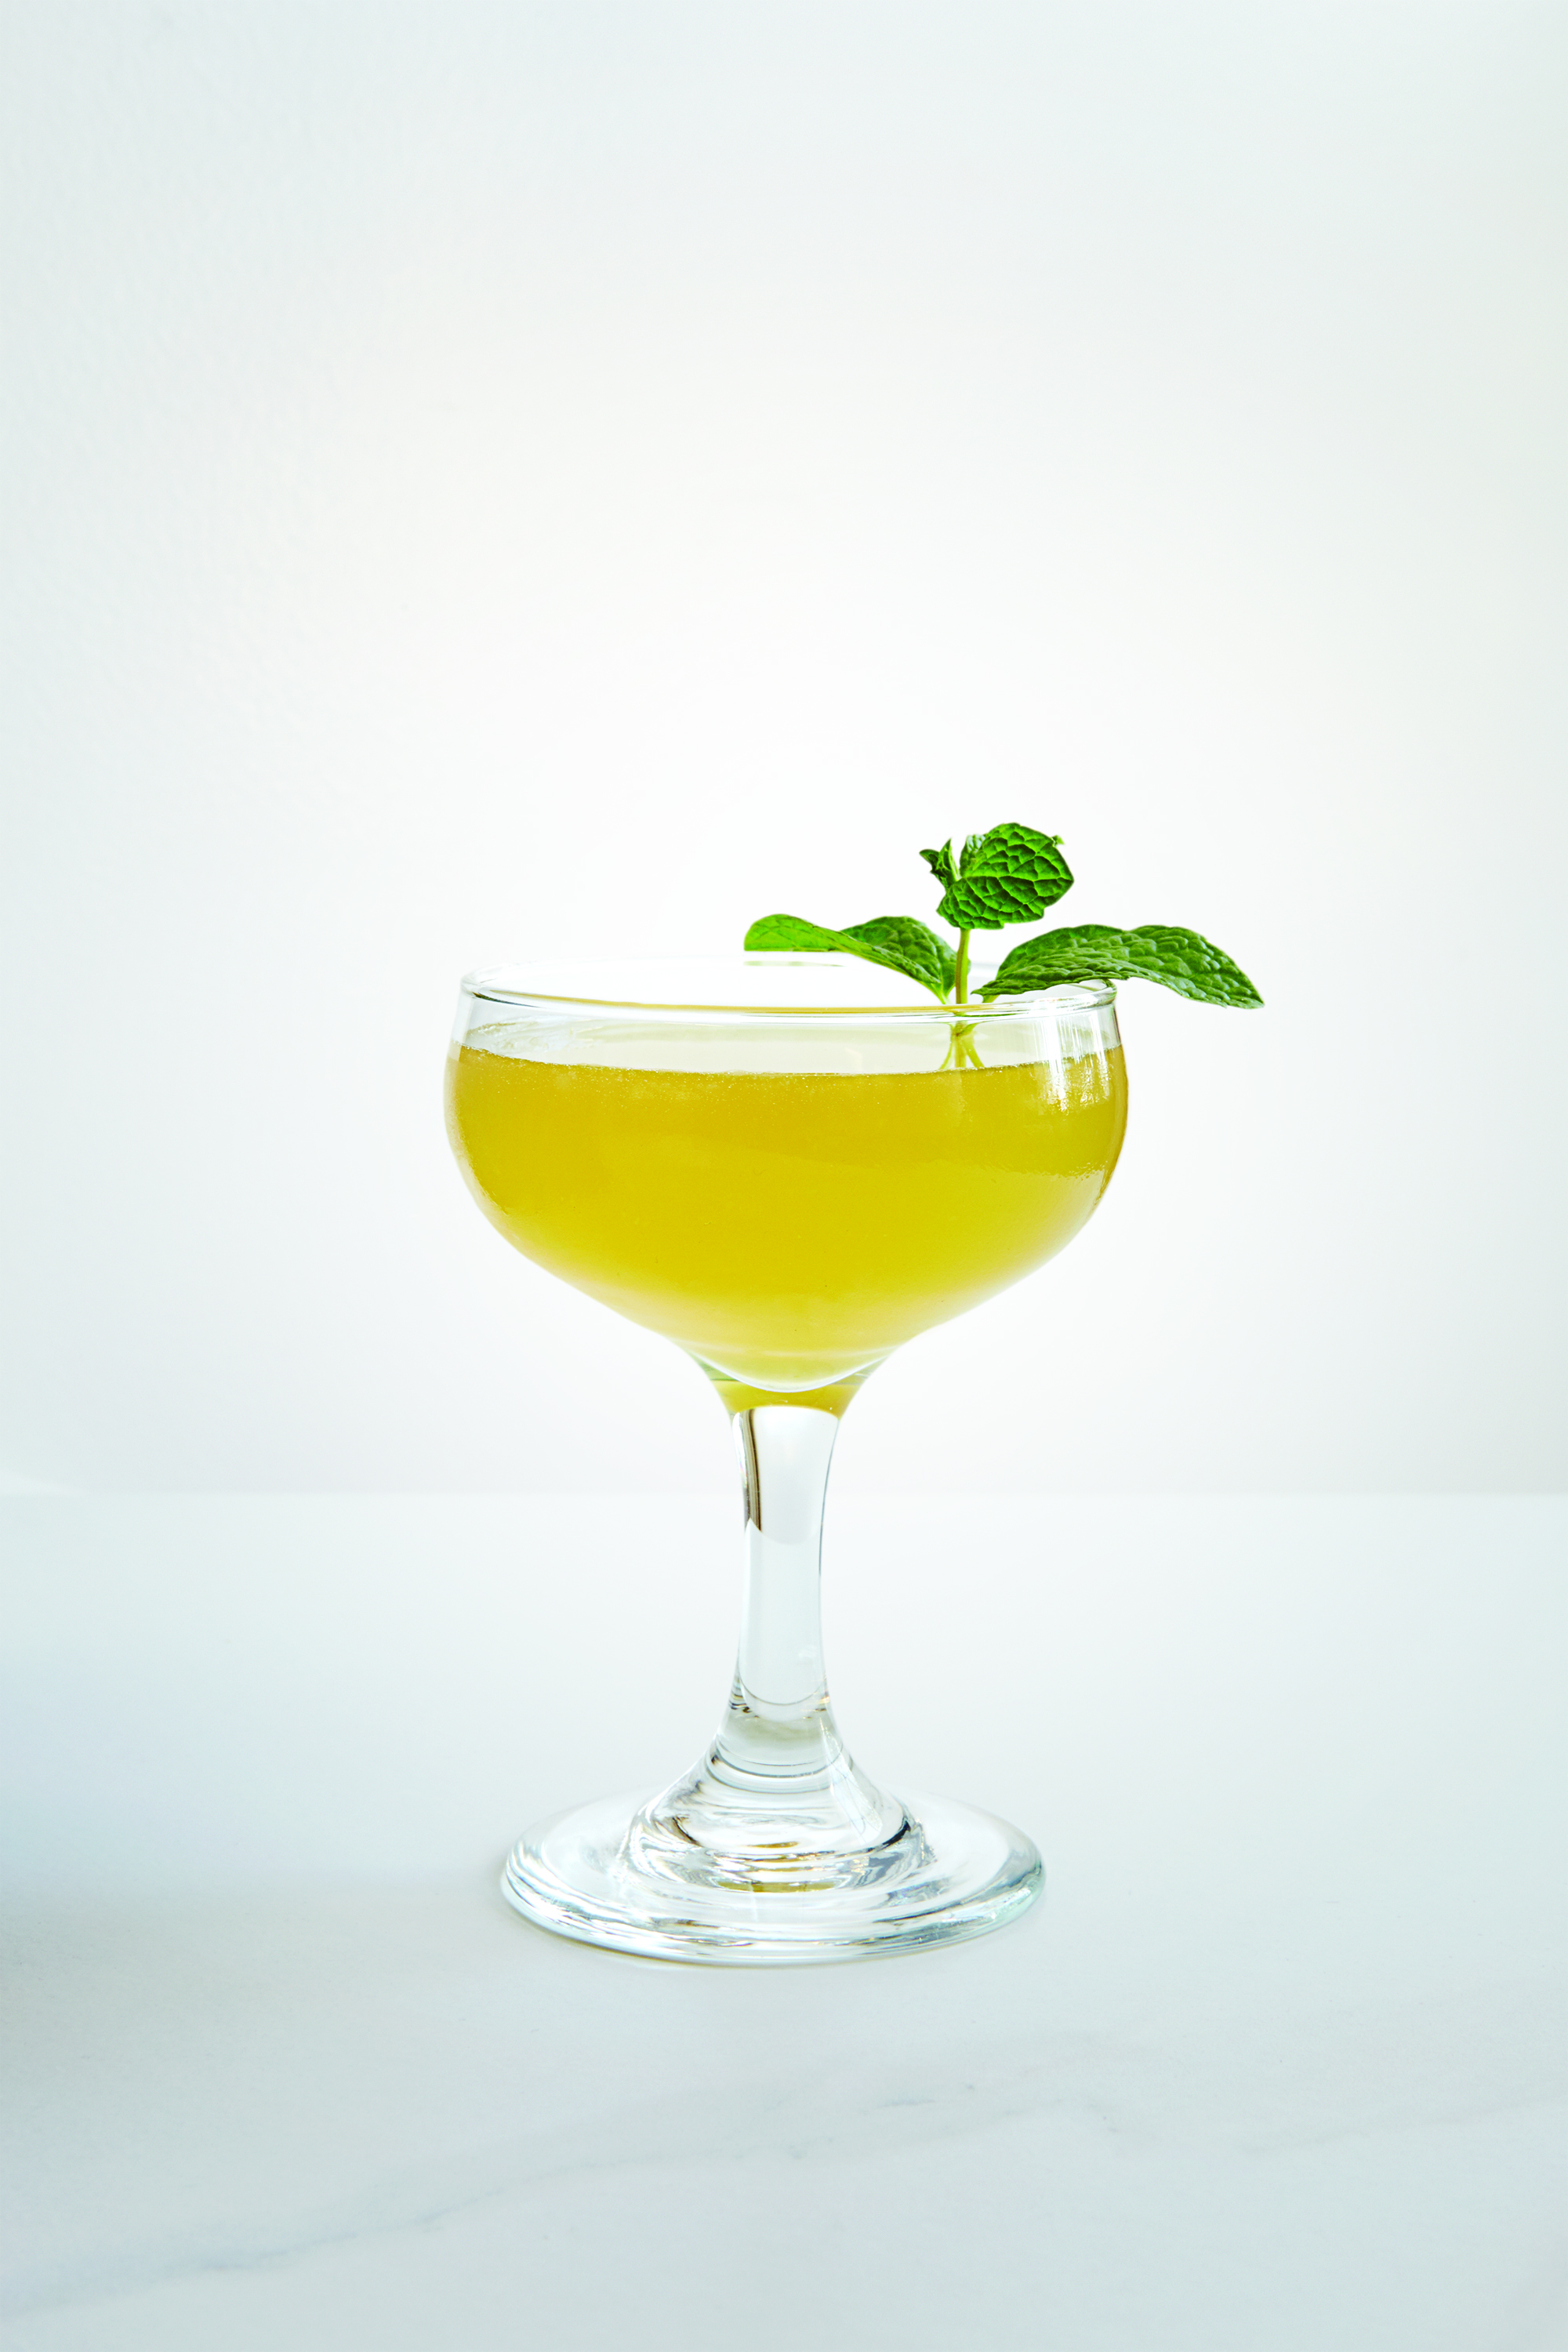 EDIE PARKER   1 1/4 oz Chareau  3/4 oz Pisco  1/2 oz Fresh Lime Juice  1/4 oz Fernet Branca  1/4 oz Simple Syrup  2 Slices Cucumber  Press 2 slices of cucumber in shaker. Add all ingredients and shake with ice. Strain into coupe.   Cocktail by Chris Amirault